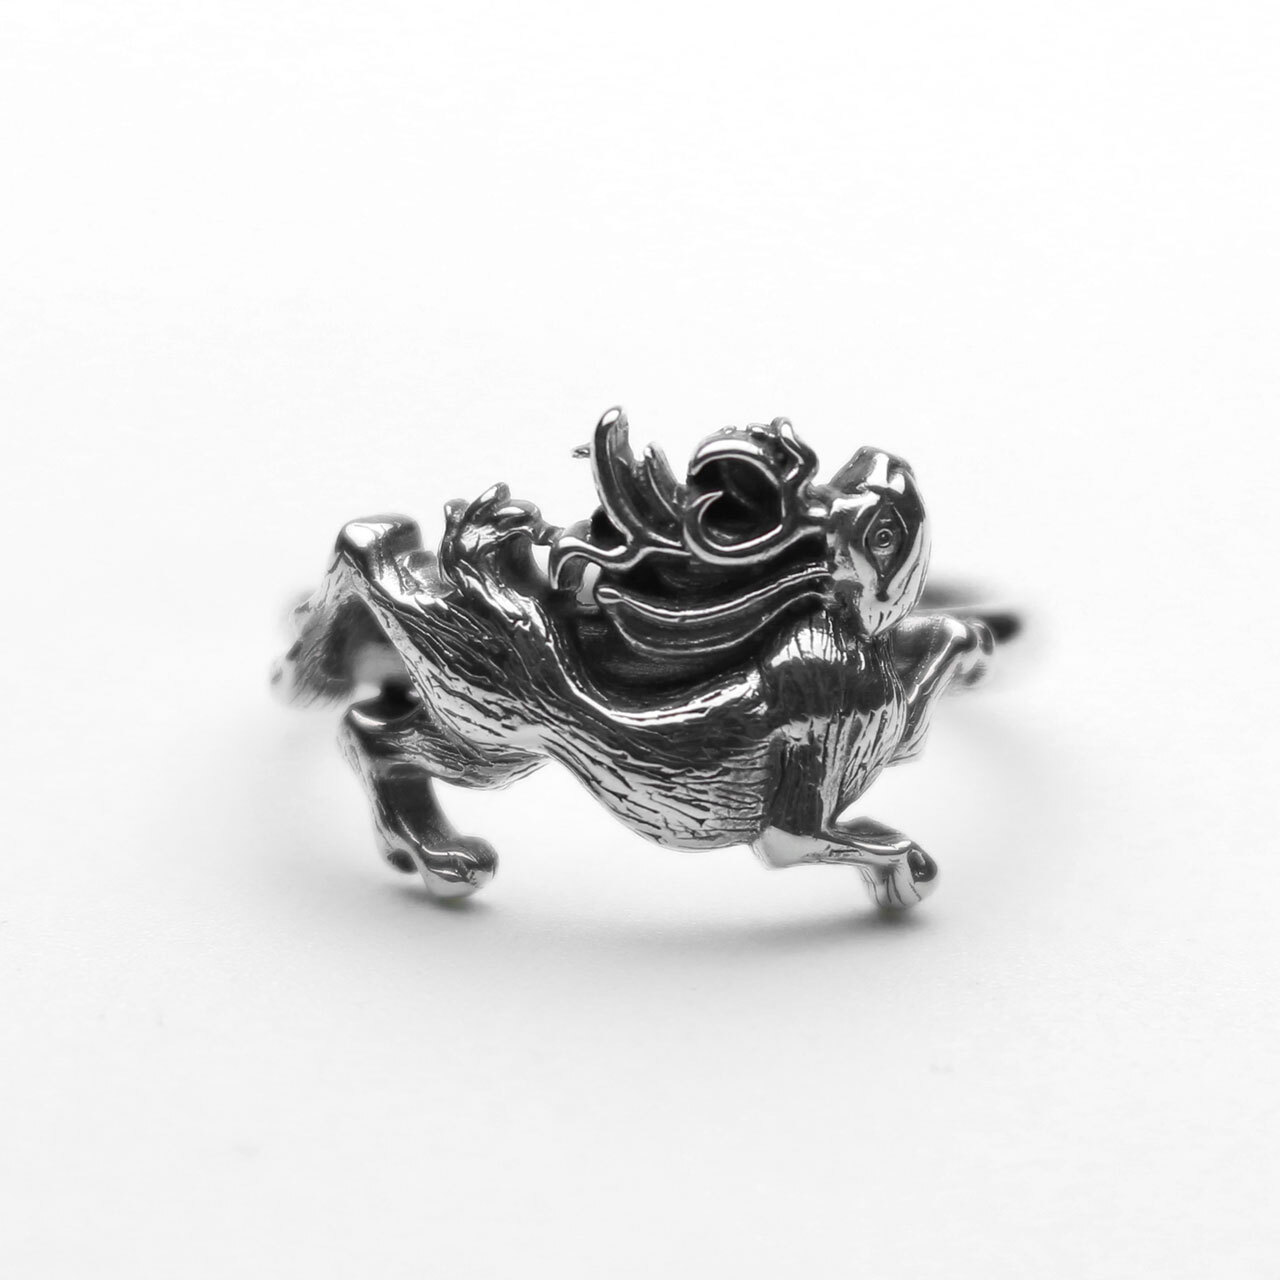 A Man Jackalope Tiny Ring エーエムエーエヌ ジャッカロープタイニーリング